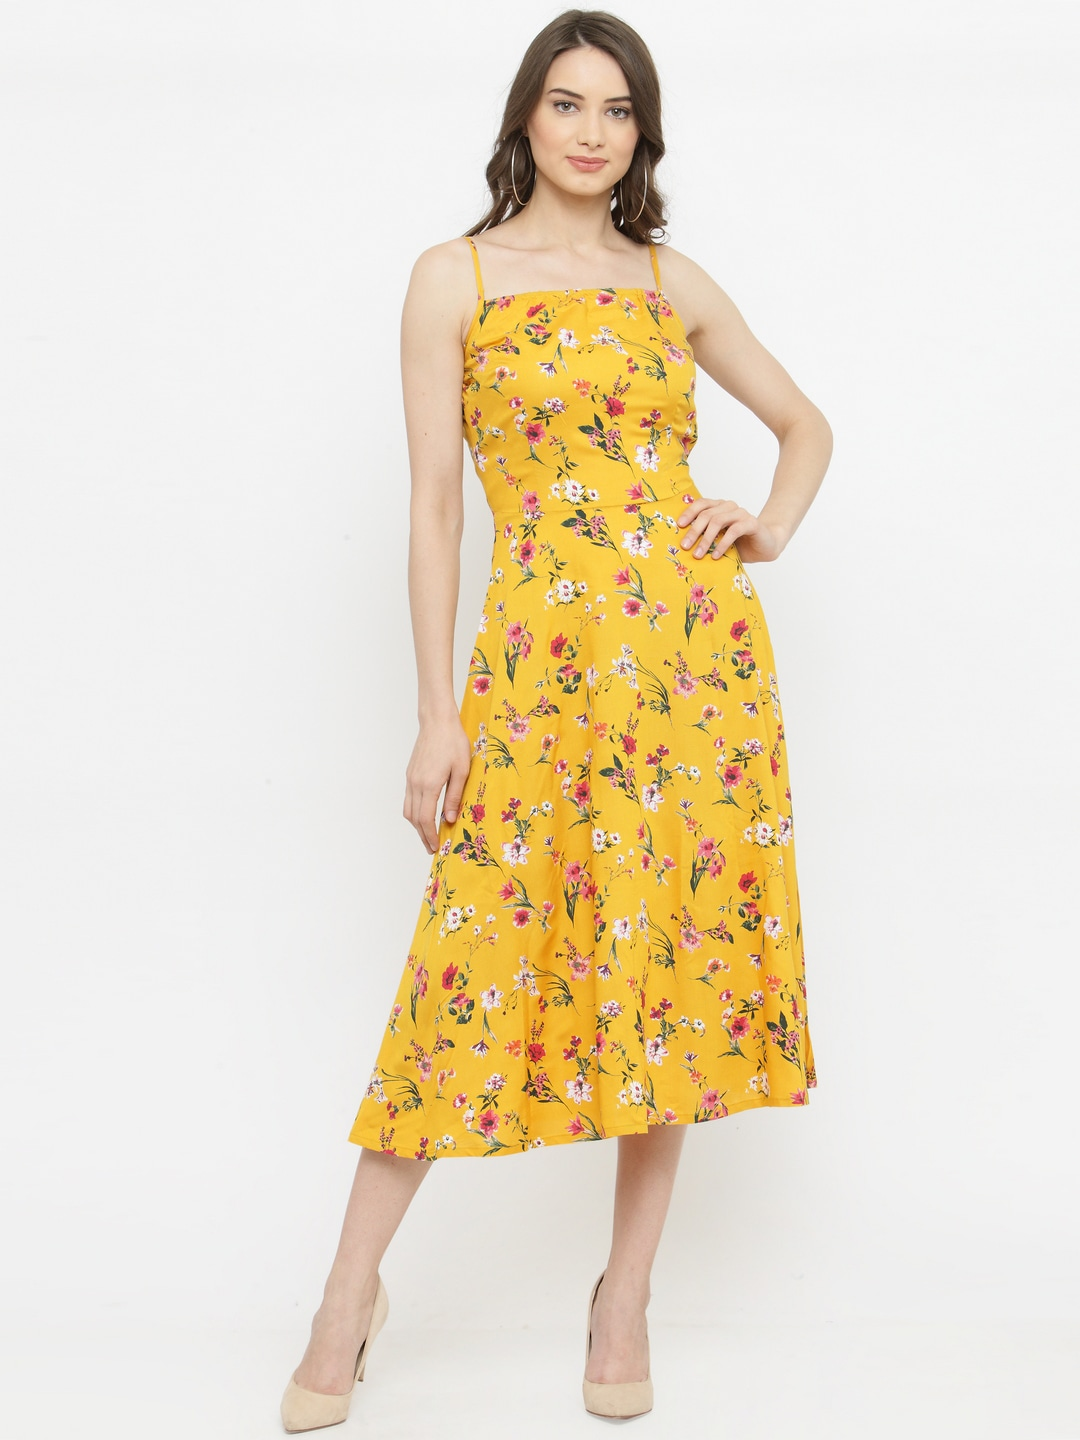 98ae13e58 One Piece Dress - Buy One Piece Dresses for Women Online in India